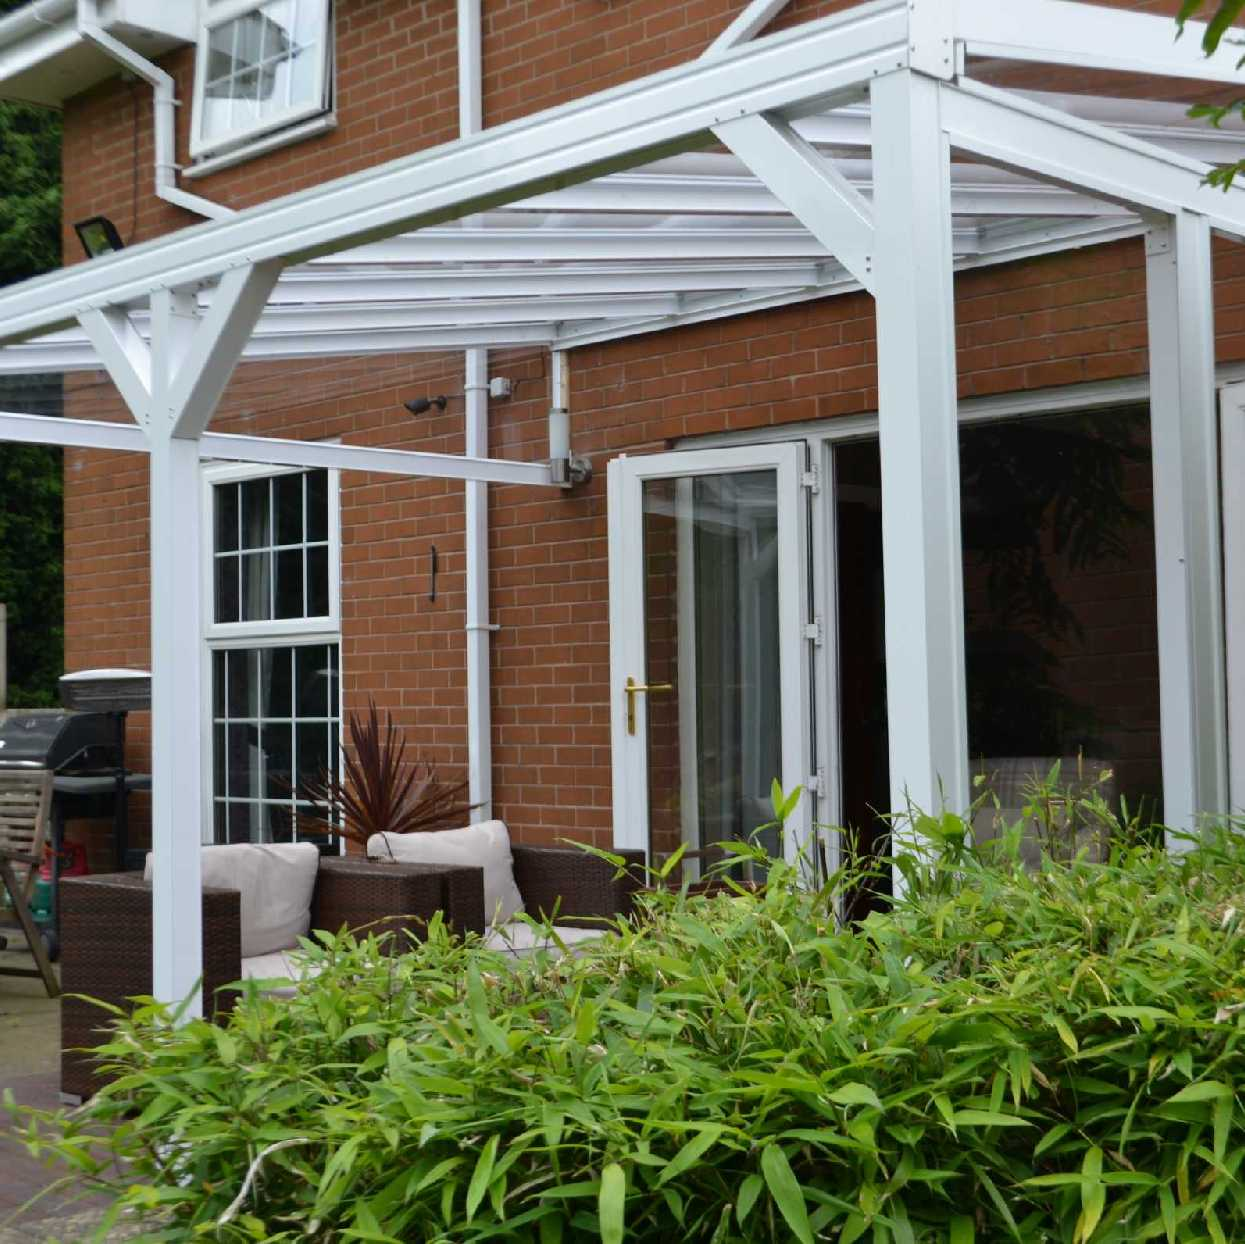 Omega Smart Lean-To Canopy UNGLAZED for 6mm Glazing - 5.2m (W) x 4.0m (P), (3) Supporting Posts from Omega Build